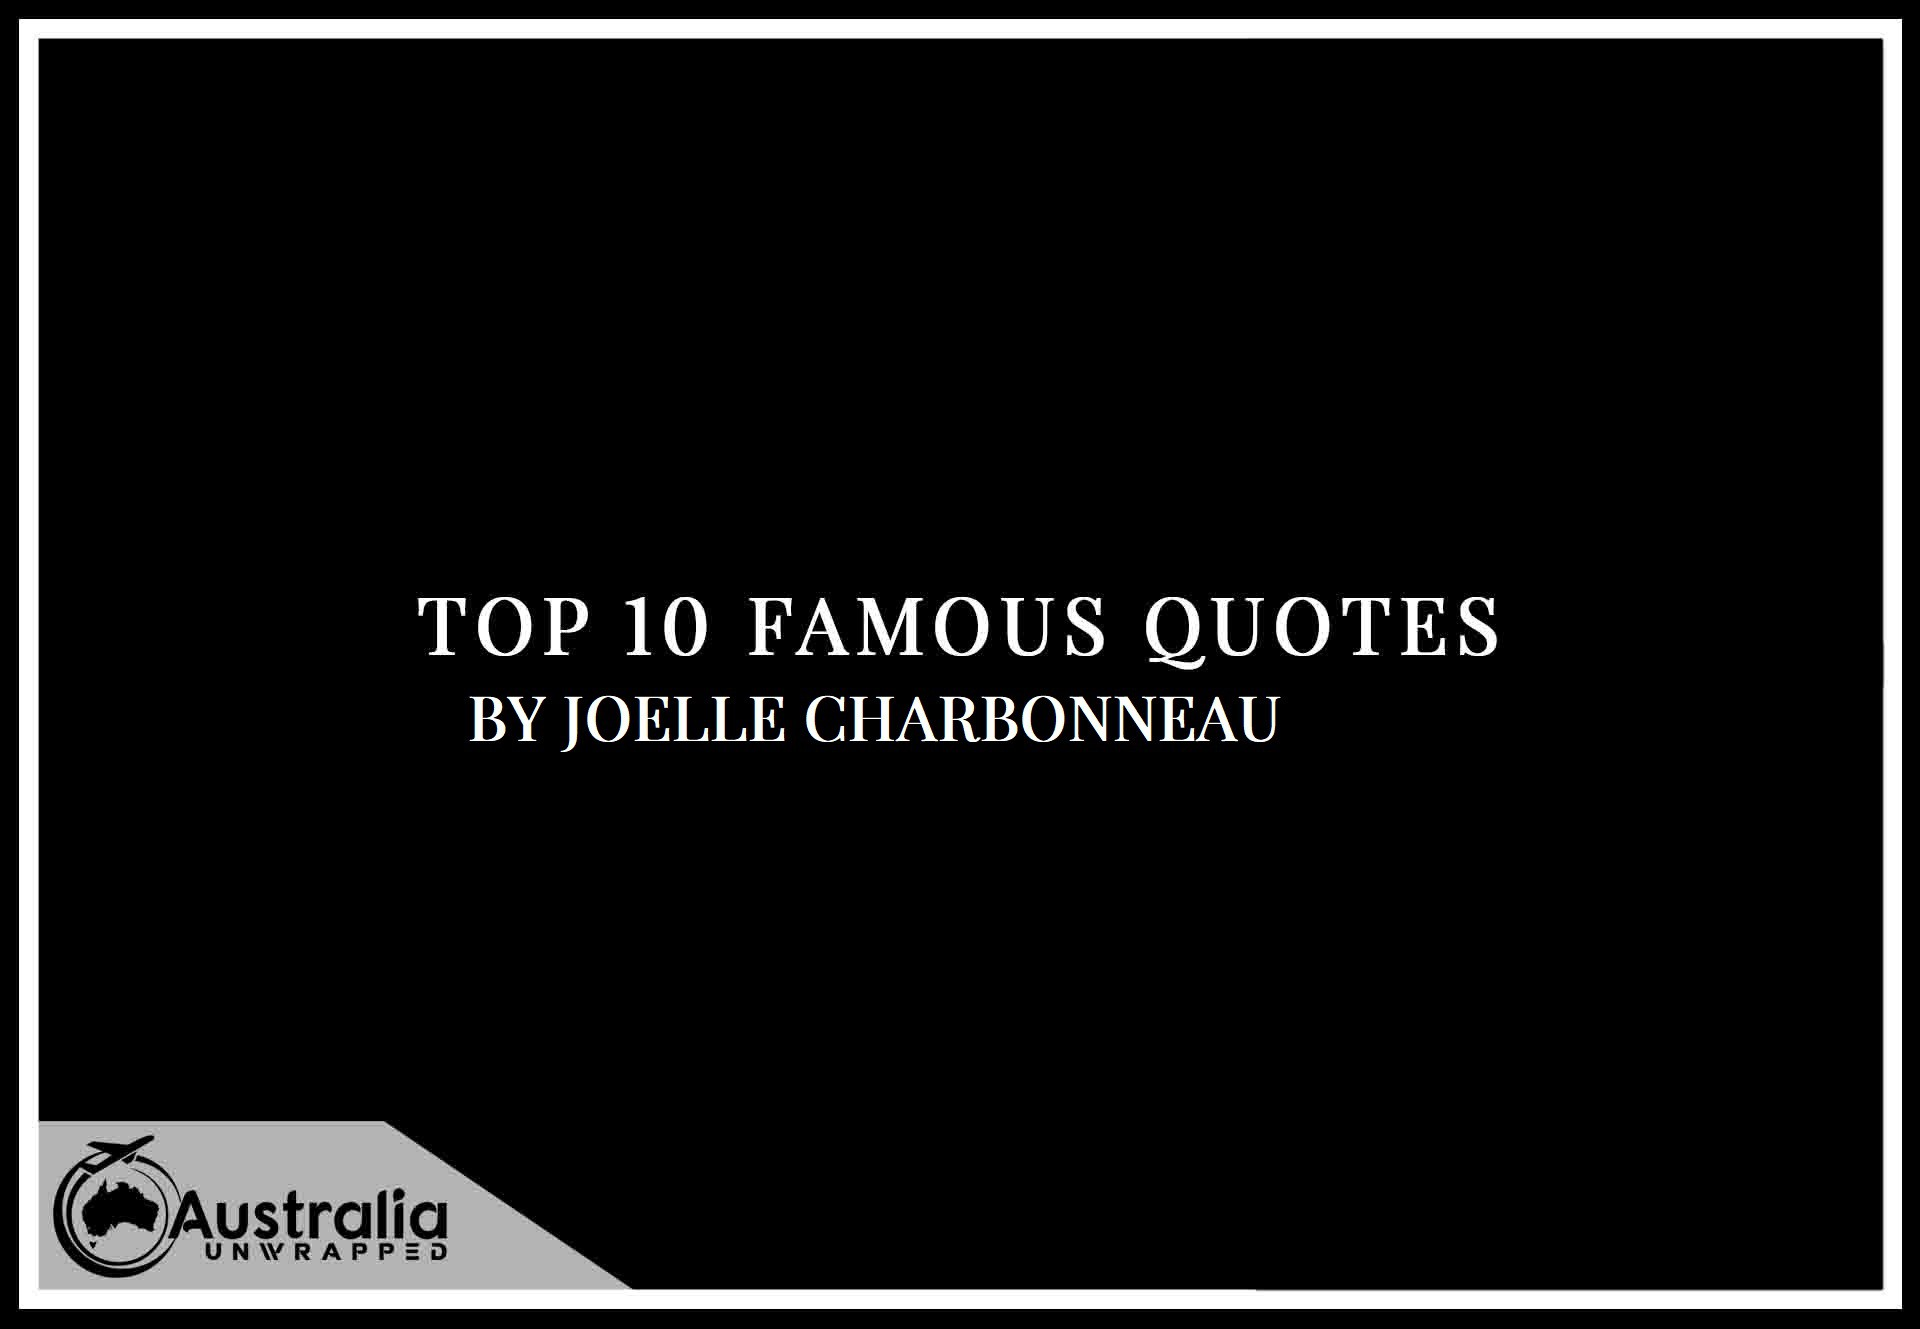 Top 10 Famous Quotes by Author Joelle Charbonneau